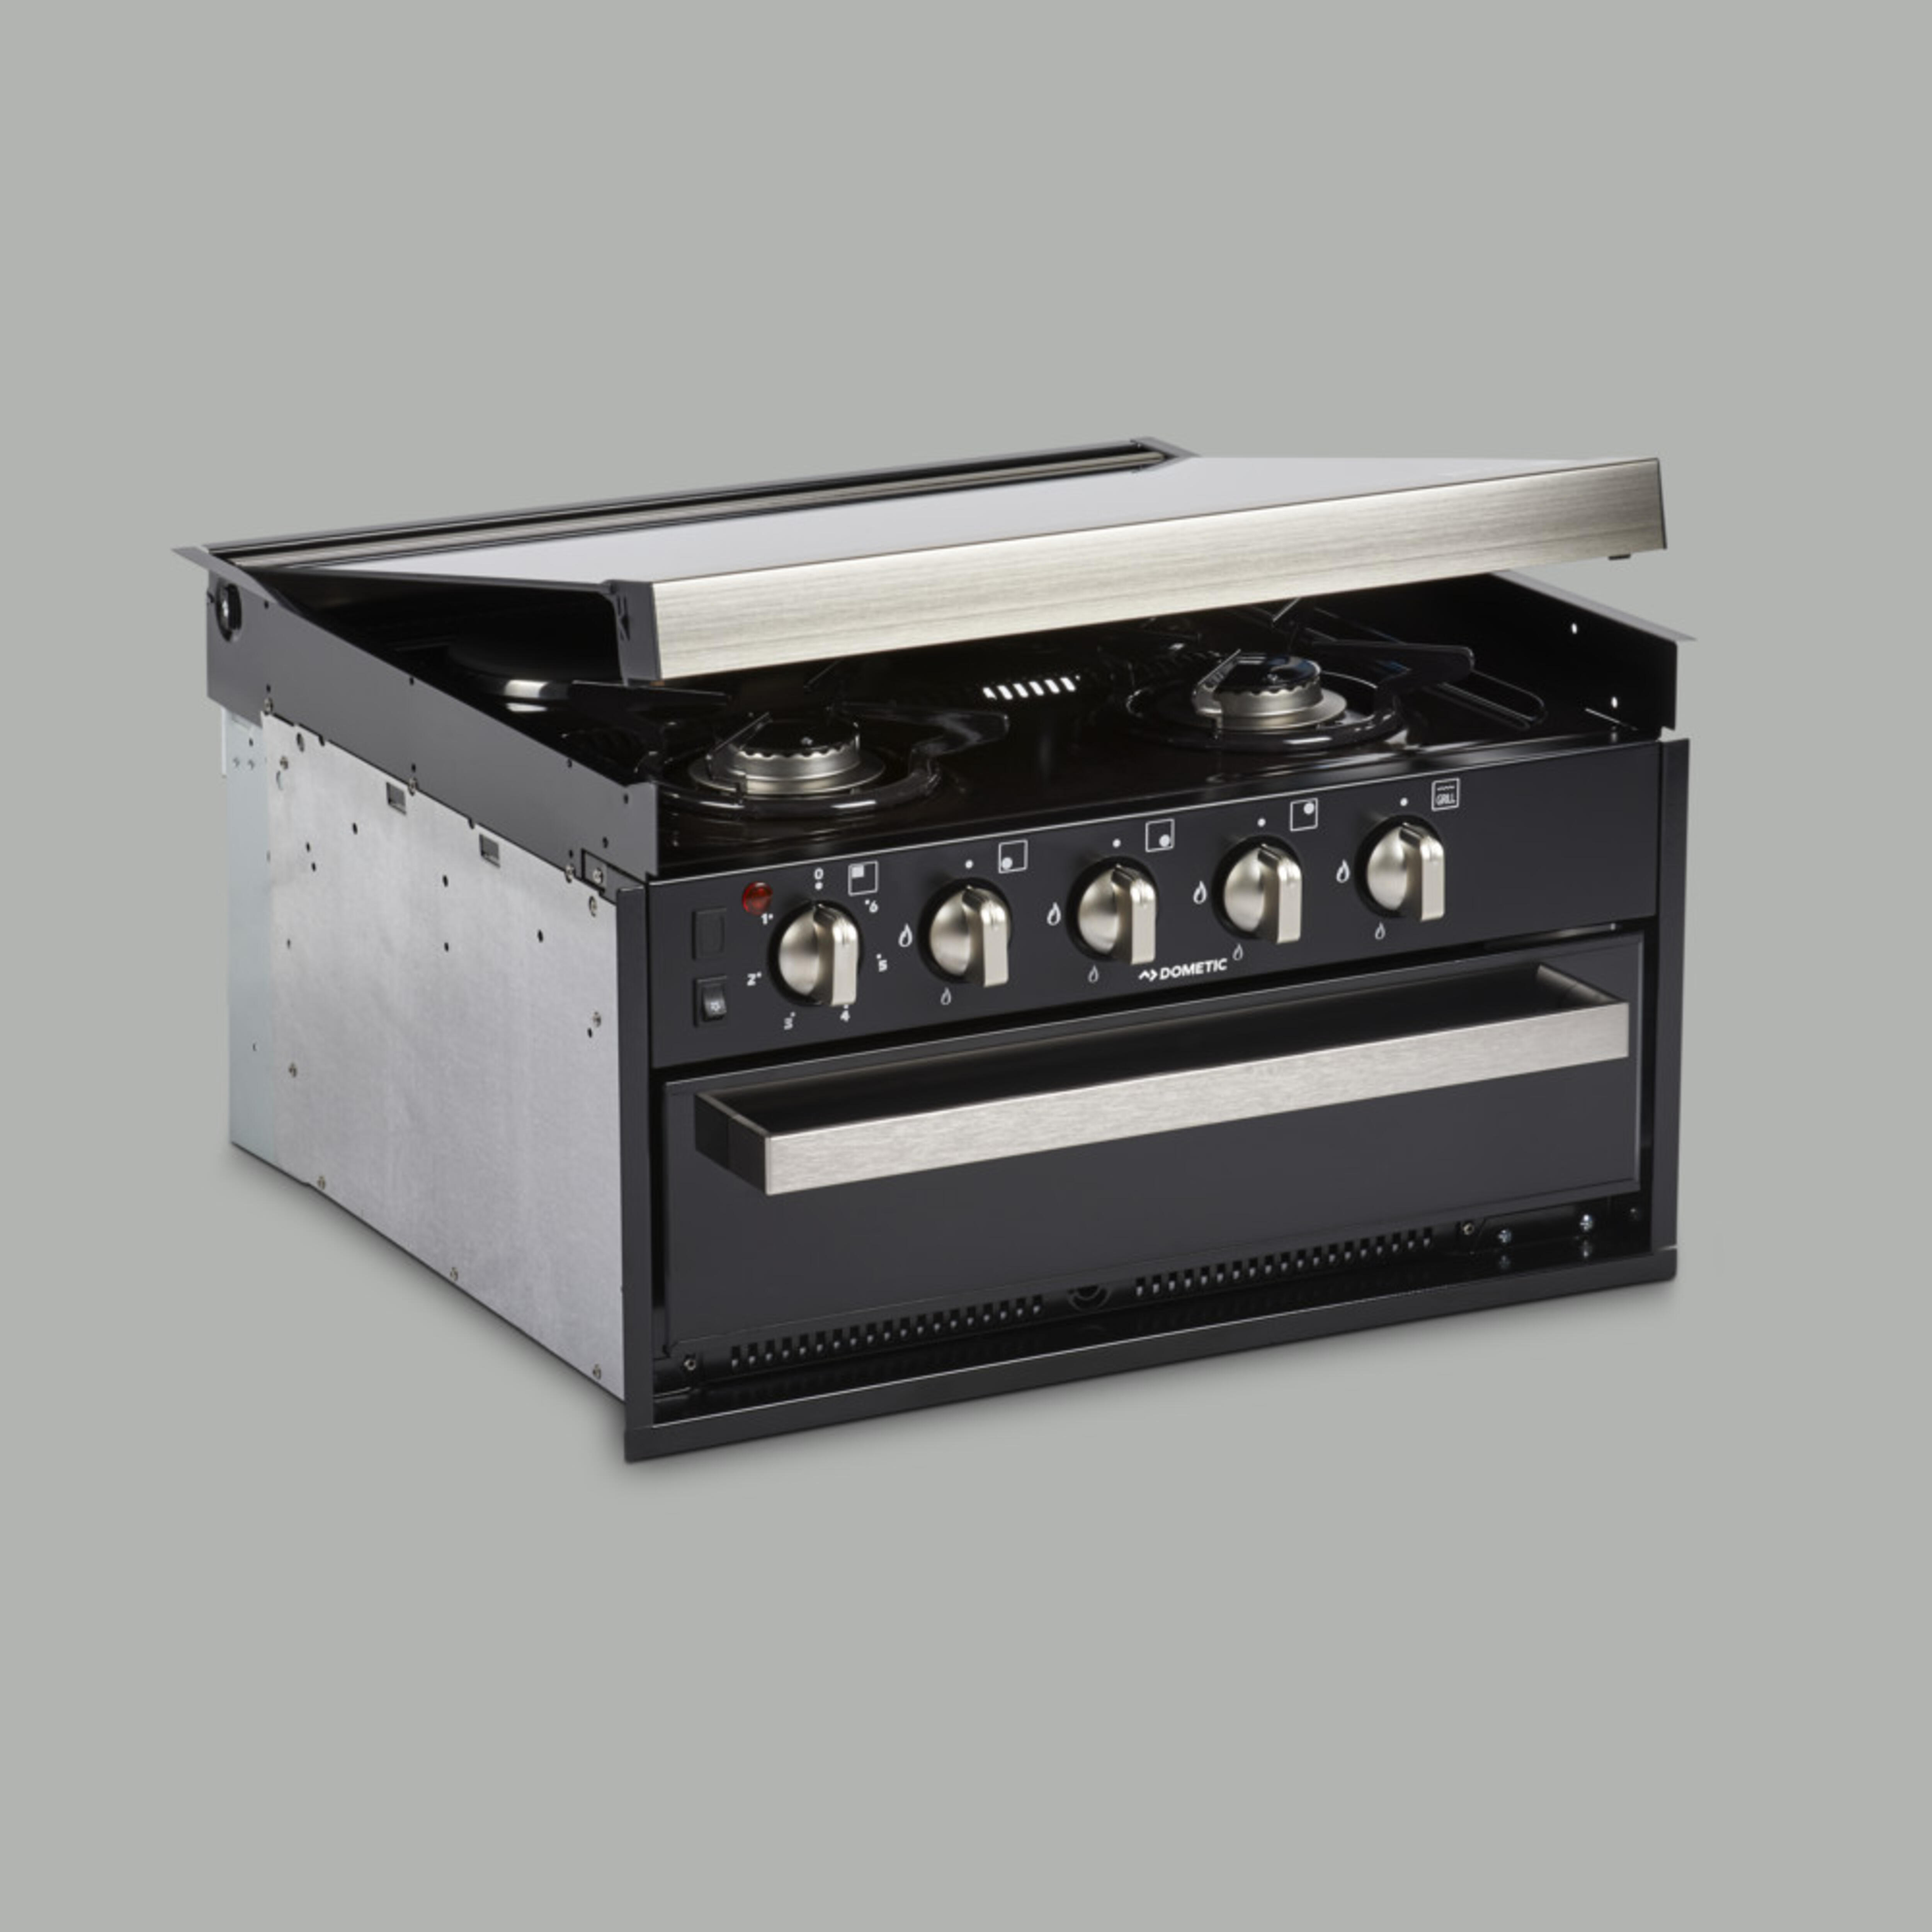 DOMETIC COOKERS